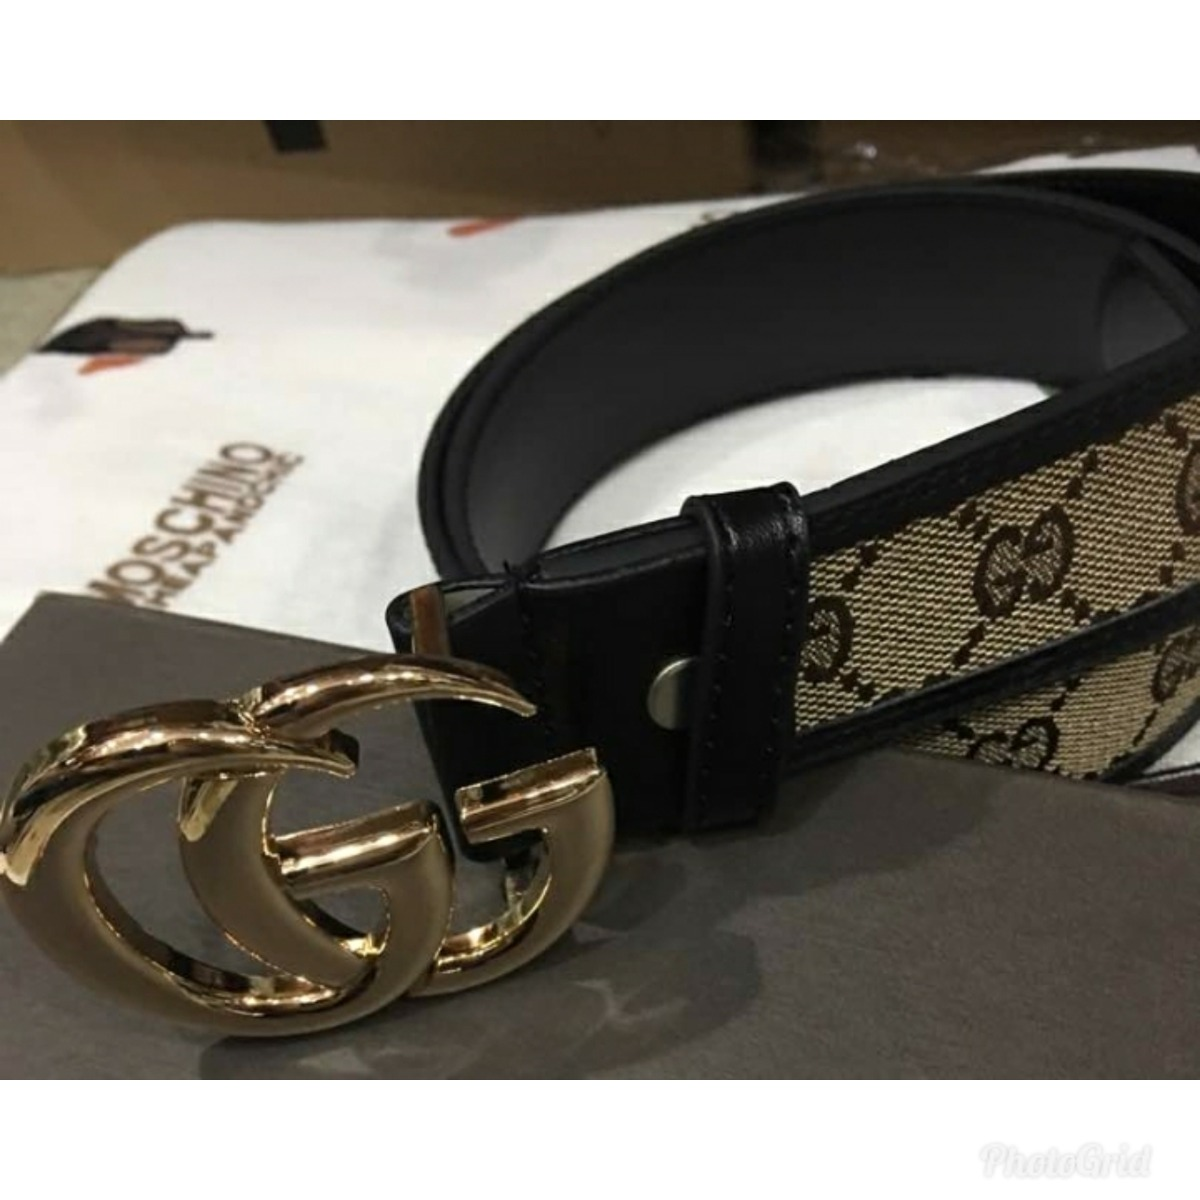 31756ba56 Correas Gucci Y Lv Unisex Al Mayor Y Al Detal - Bs. 1.500,00 en ...